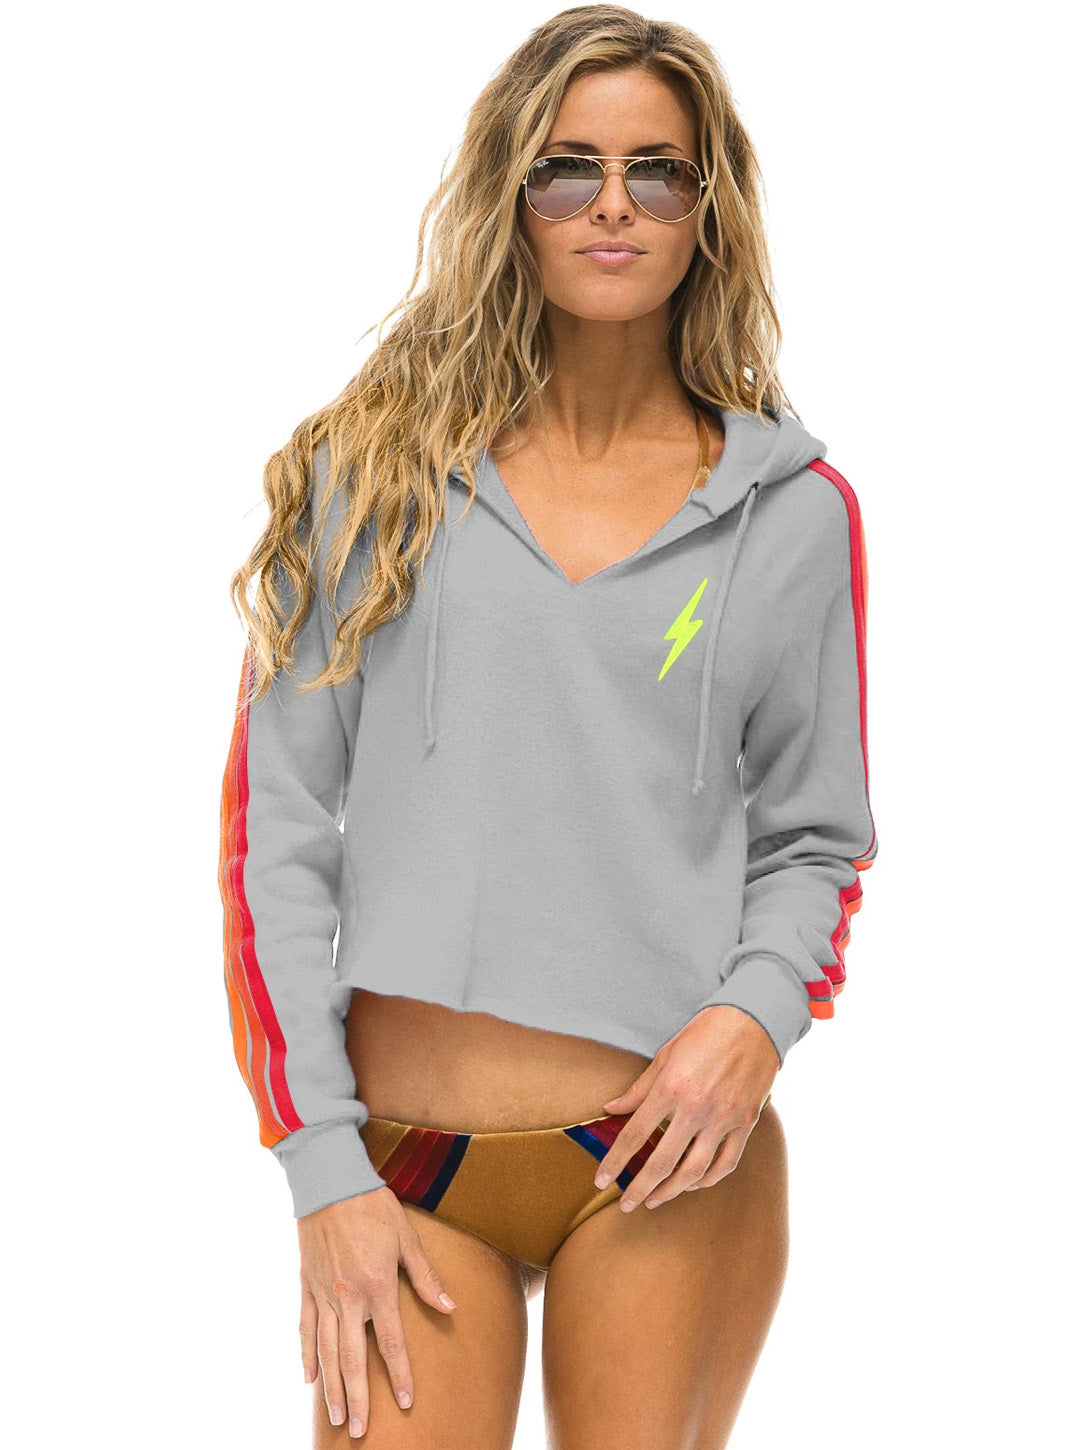 Classic 4 Stripe Bolt Split Neck Crop Hoodie - Light Grey/Neon-AVIATOR NATION-Over the Rainbow